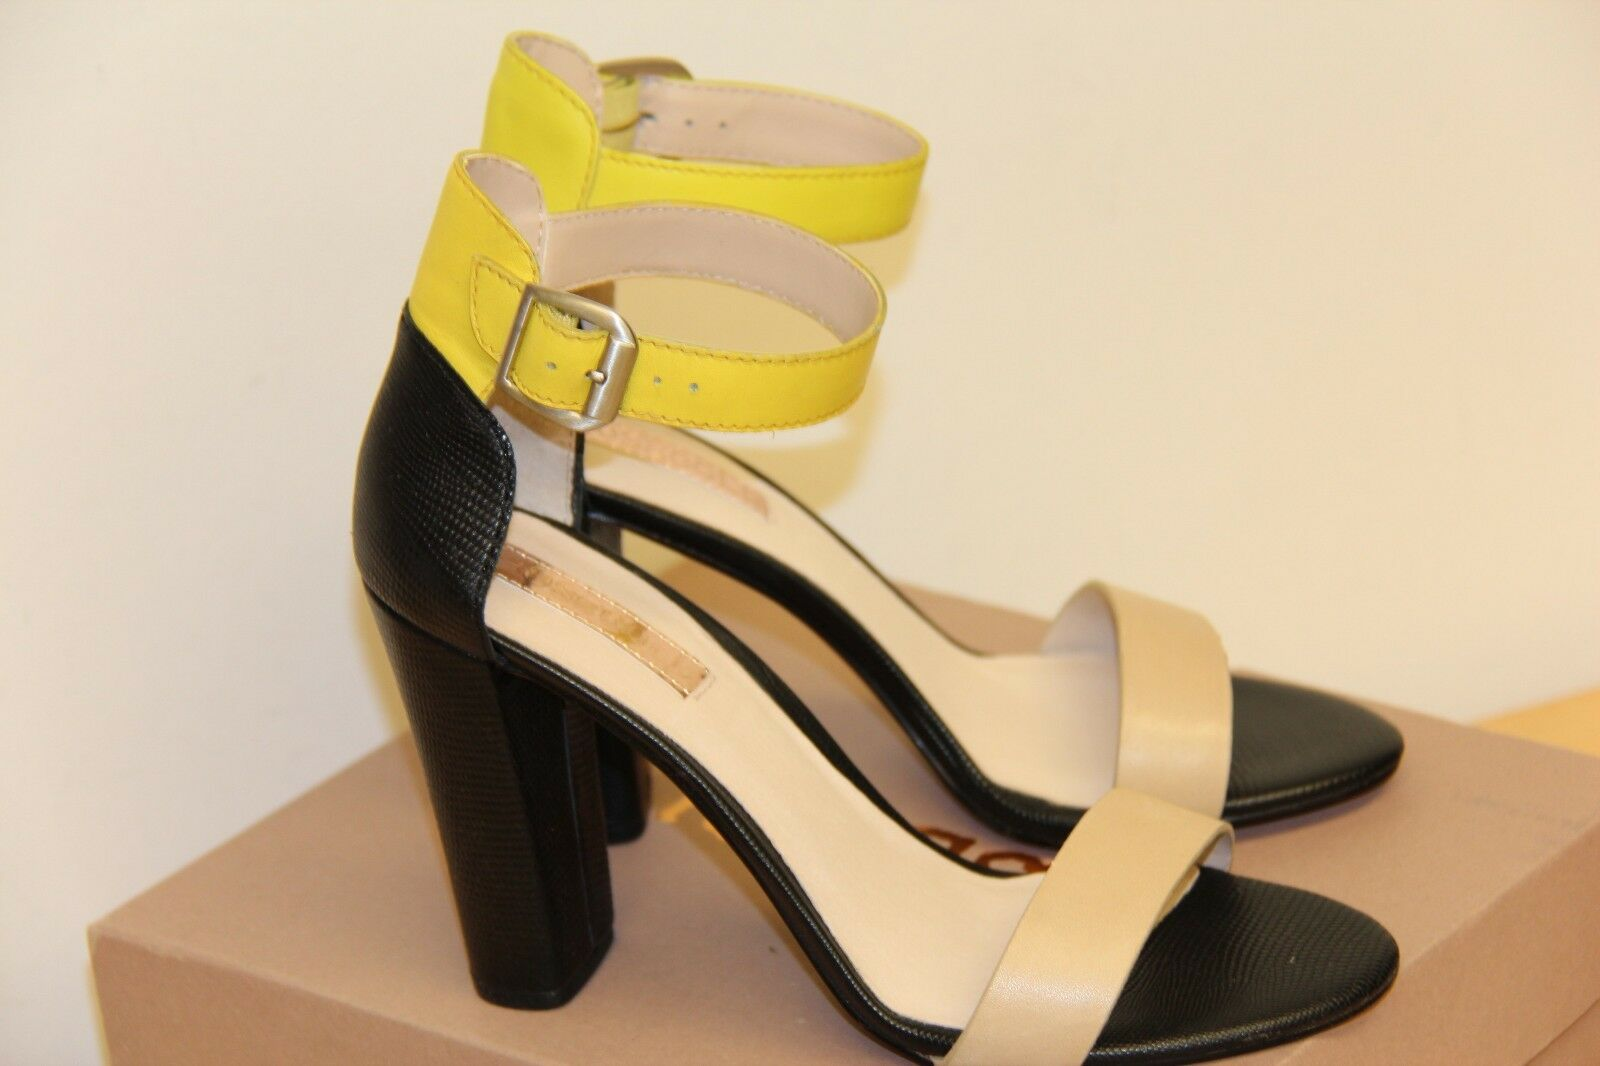 NIB pinkgold ZACK High Heel Leather Sandals shoes Sz 38.5 38.5 38.5 8.5 Bisque Lemon Lime 0122a7